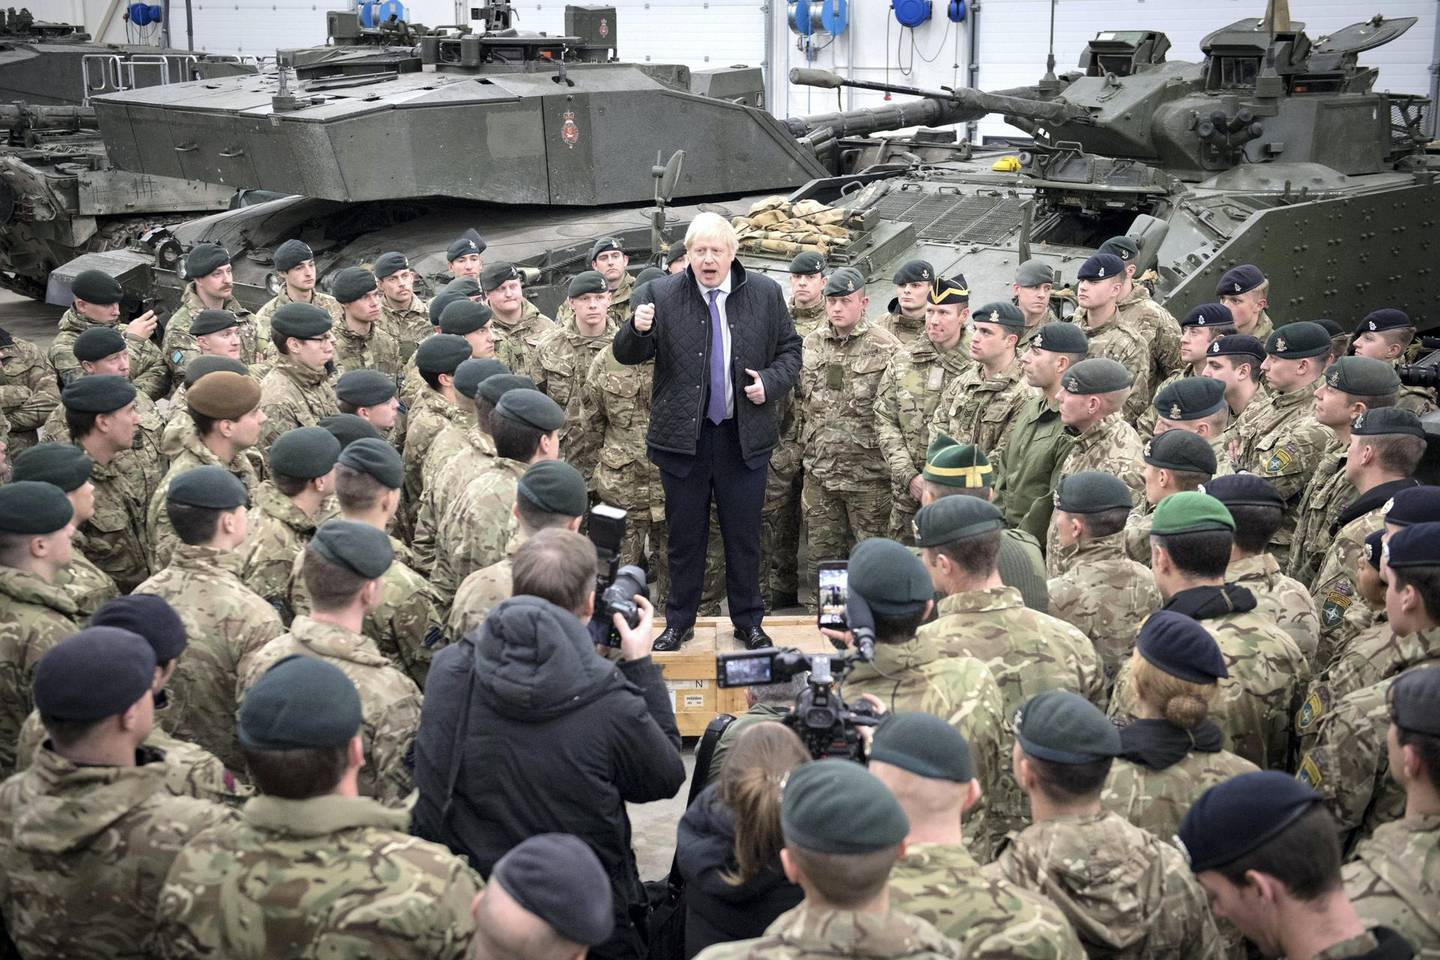 TALLINN, ESTONIA - DECEMBER 21:  Prime Minister Boris Johnson speaks to British troops stationed in Estonia during a one-day visit to the Baltic country on December 21, 2019 in Tallinn, Estonia. The base is home to 850 British troops from the Queen's Royal Hussars who lead the Nato battlegroup along with personnel from Estonia, France and Denmark. (Photo by Stefan Rousseau - Pool/Getty Images)